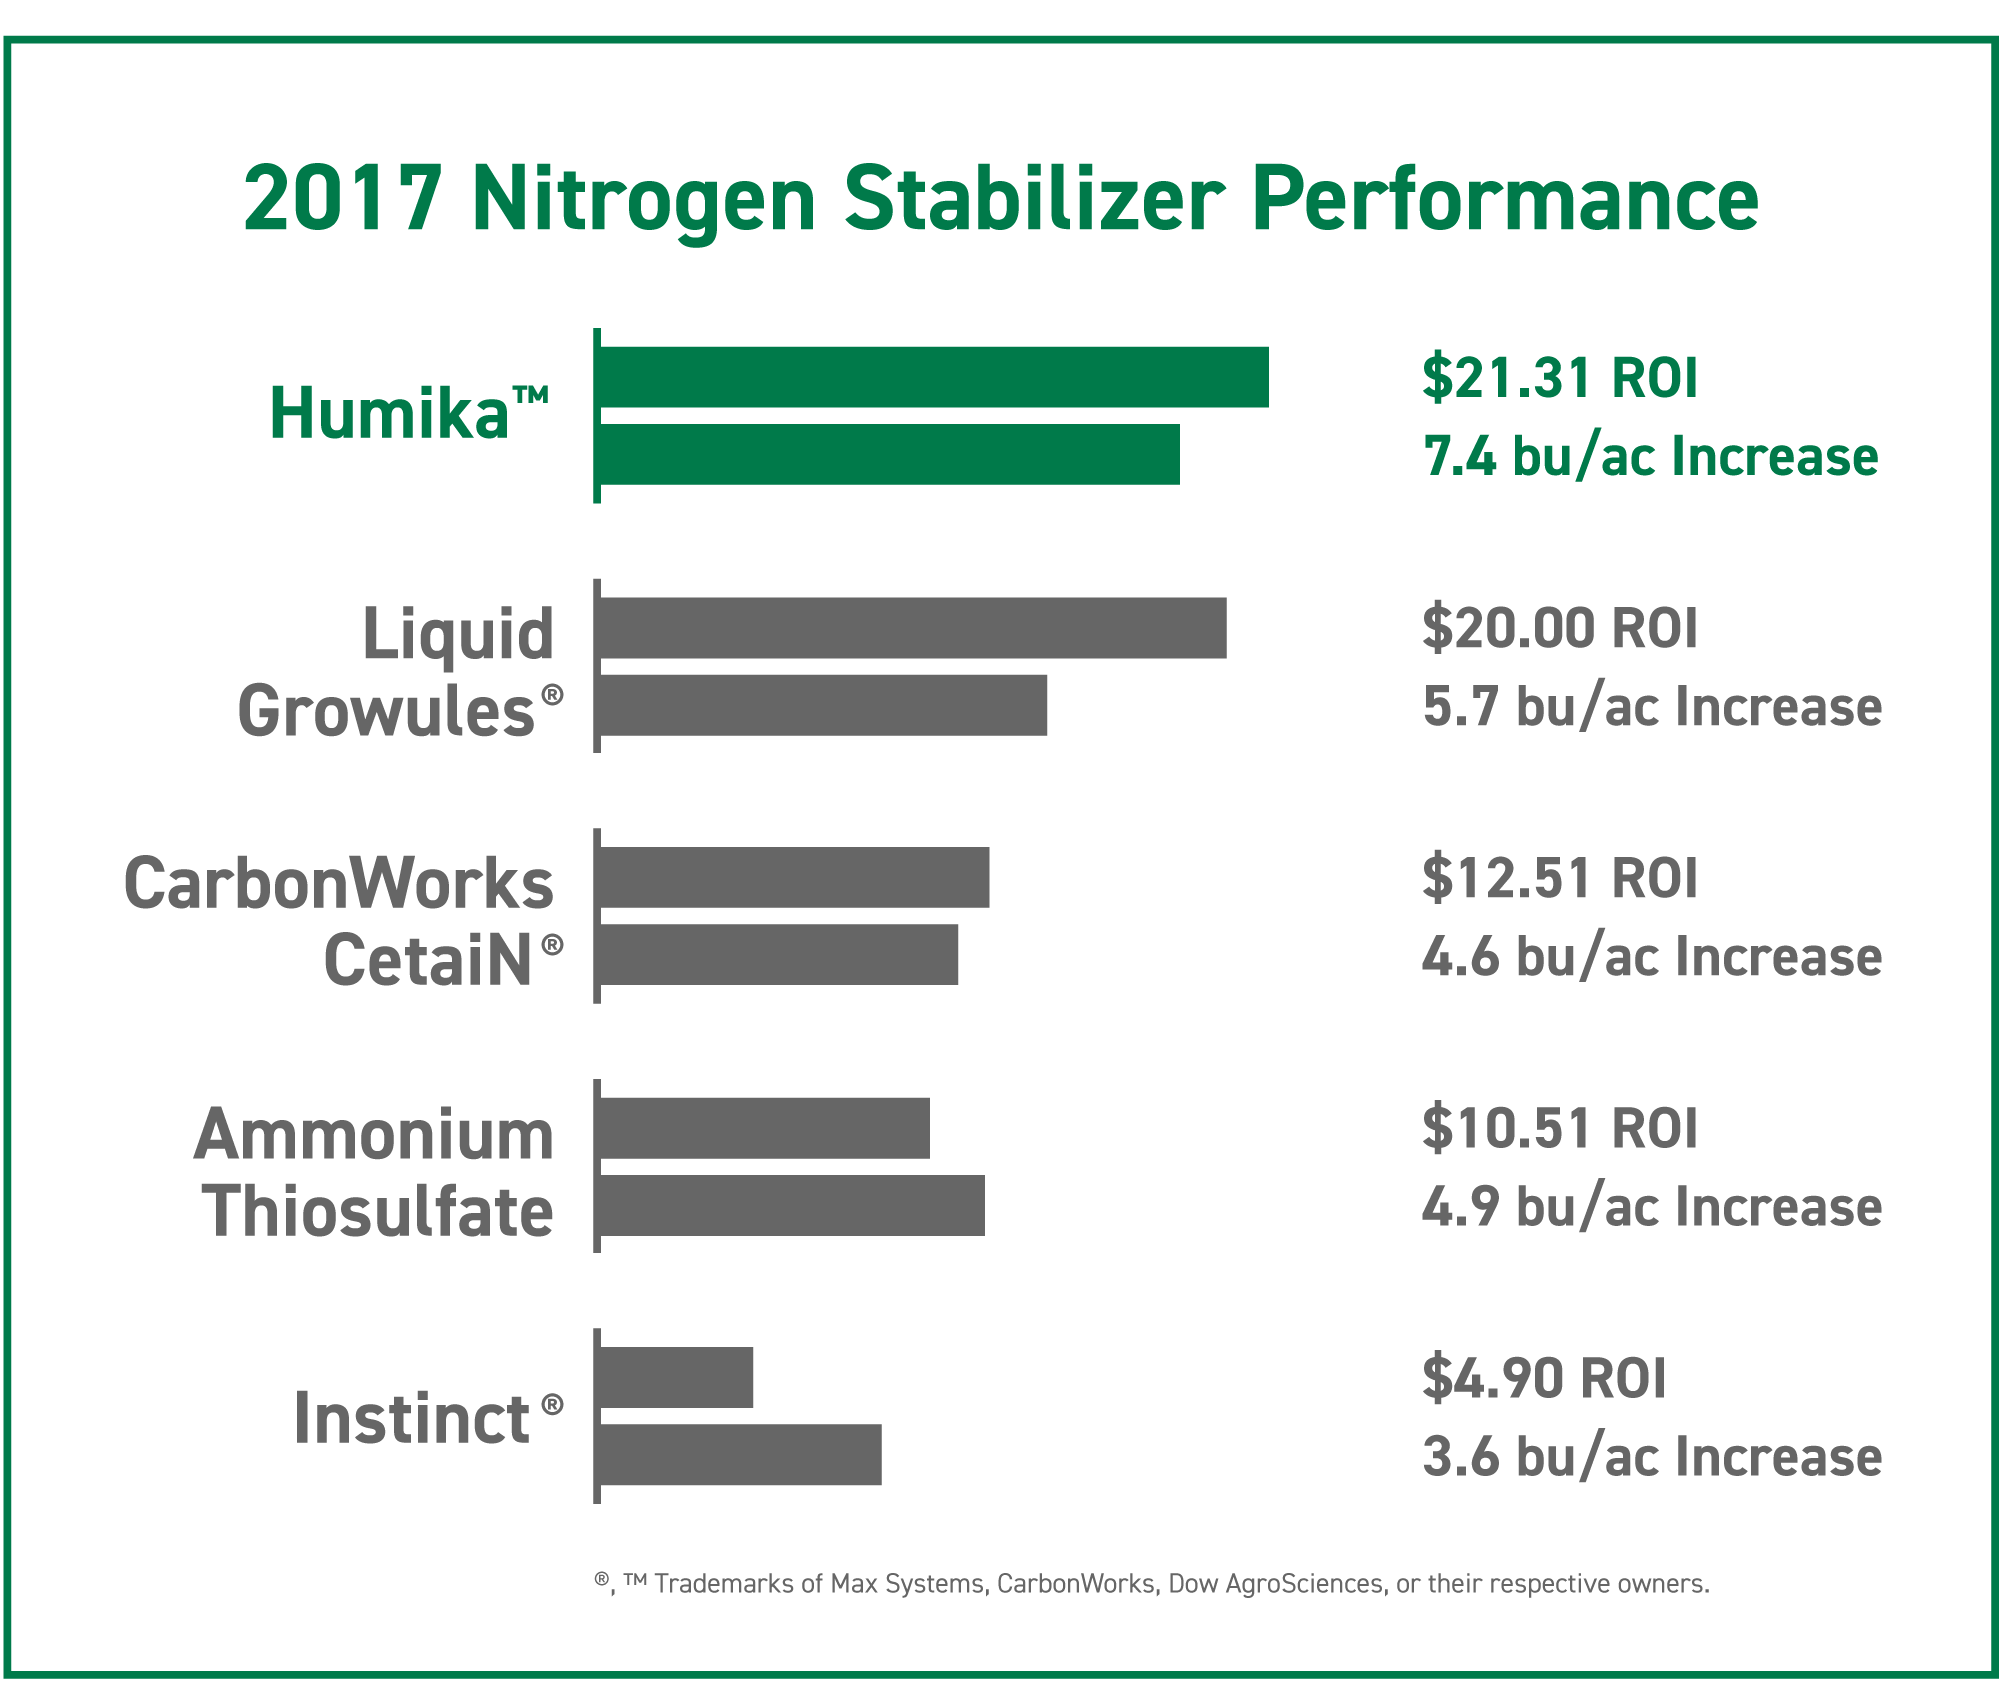 2017 nitrogen stabilizer corn trial results